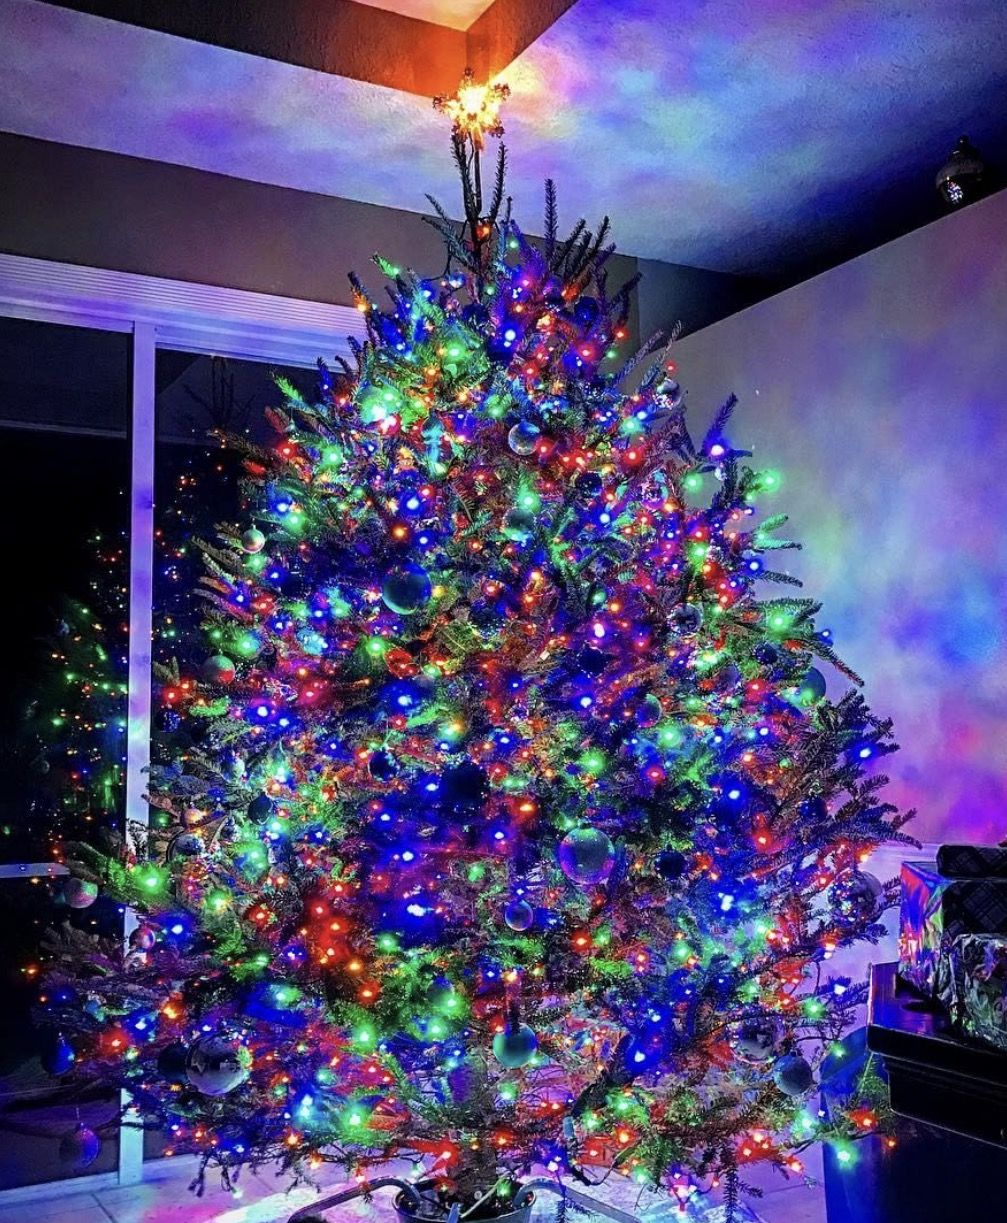 How To String Lights On A Christmas Tree Delectable 70 Bulb 5Mm Led String Mini Lights  Multicolor  Live Christmas Design Inspiration